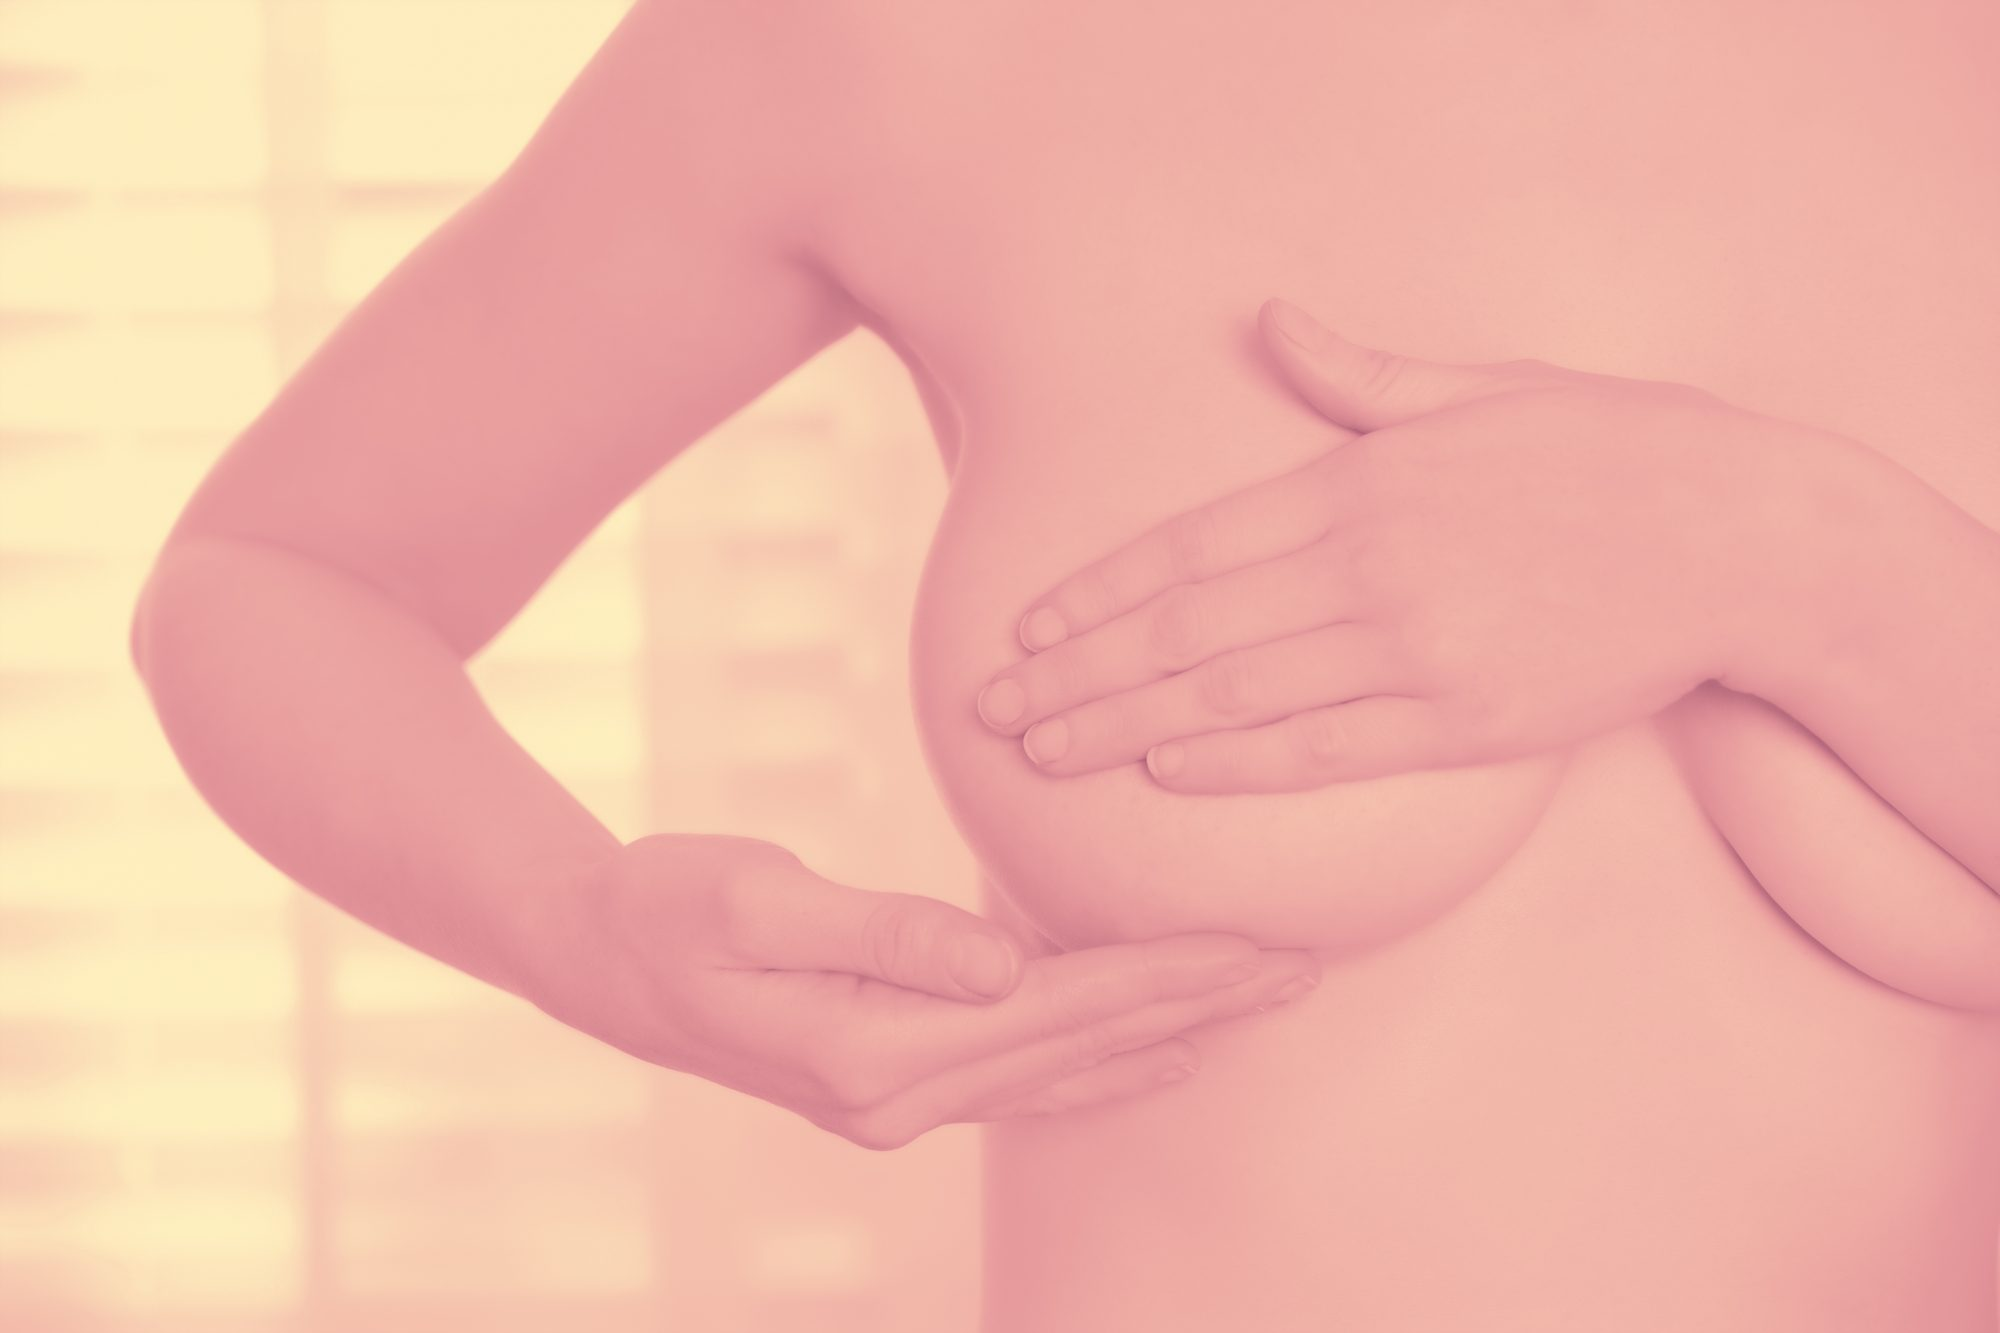 Why You Probably Don't Need to Do a Breast Self-Exam–and What Doctors Say to Do Instead